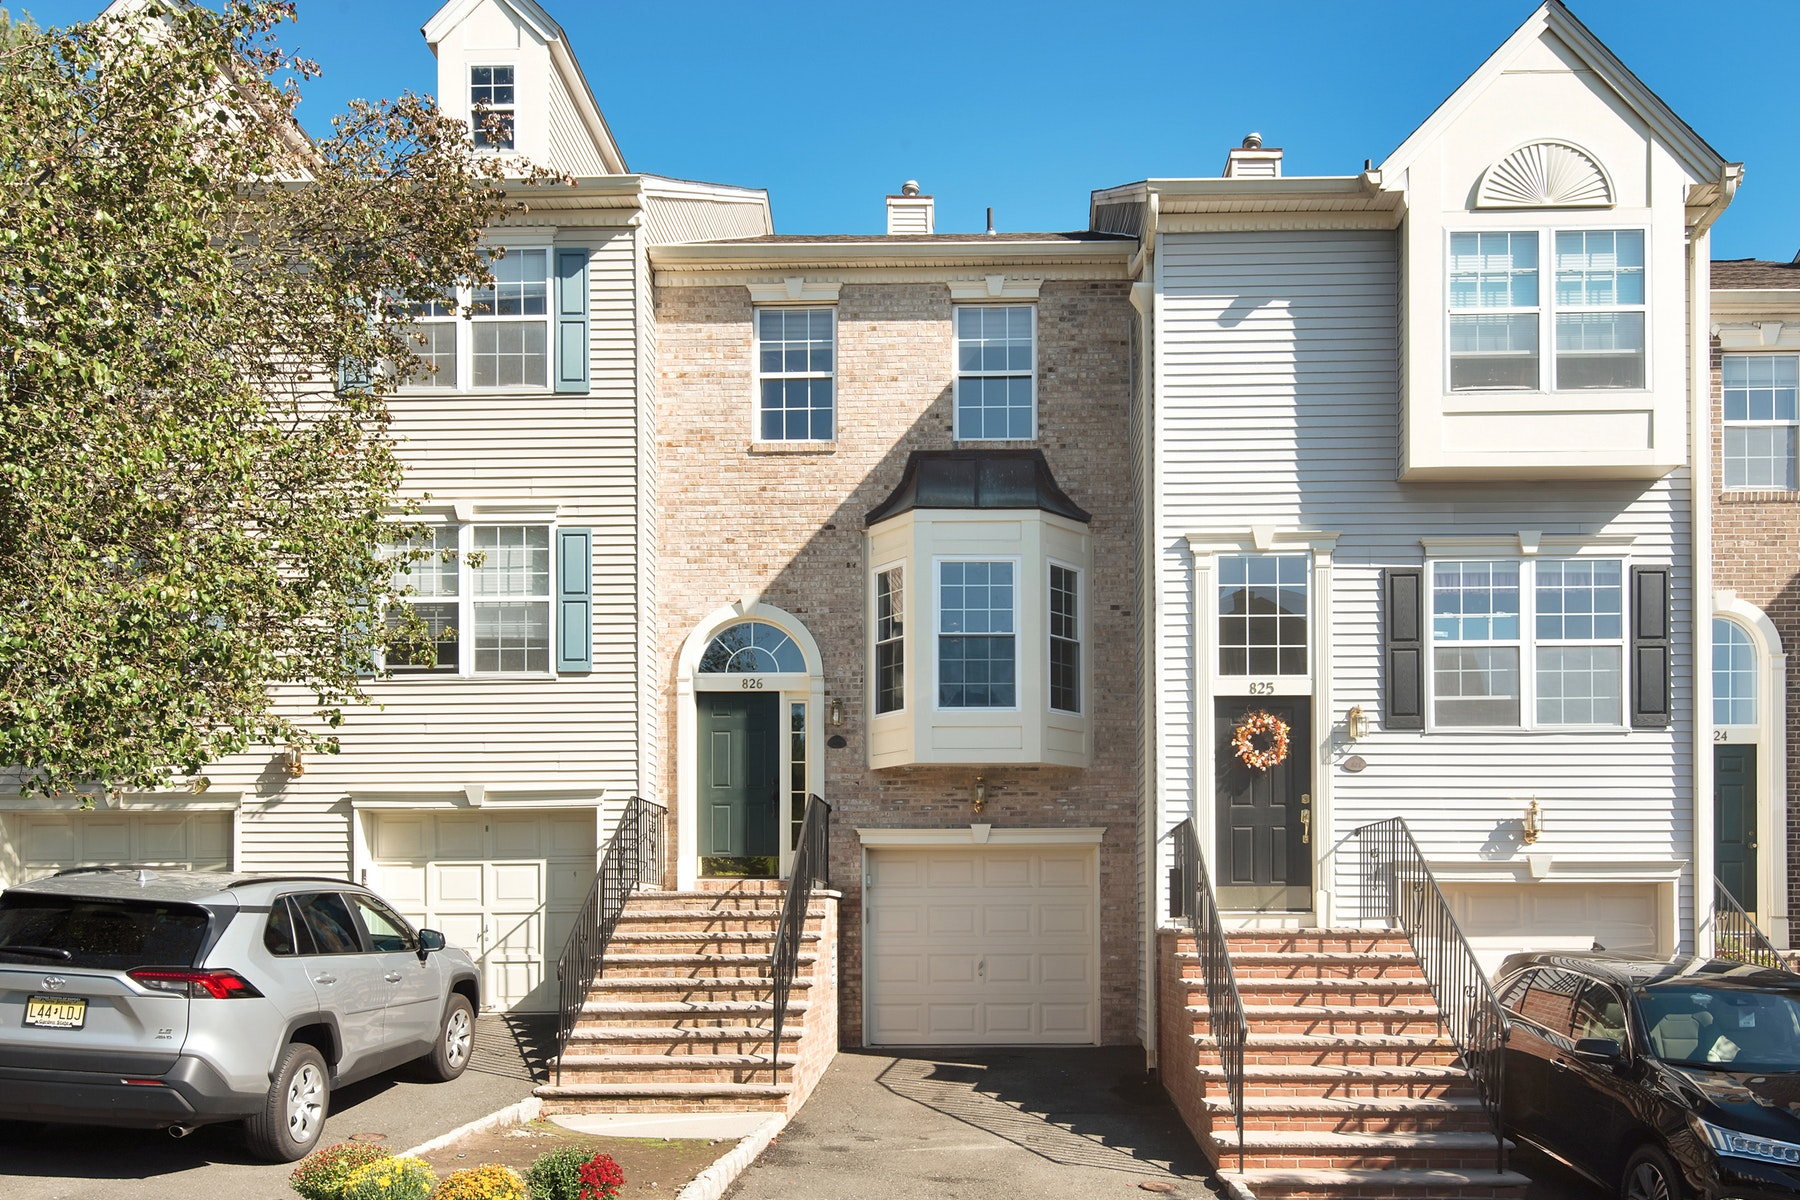 Condominiums for Sale at Cambridge Heights 826 Georgetown Drive Ramsey, New Jersey 07446 United States